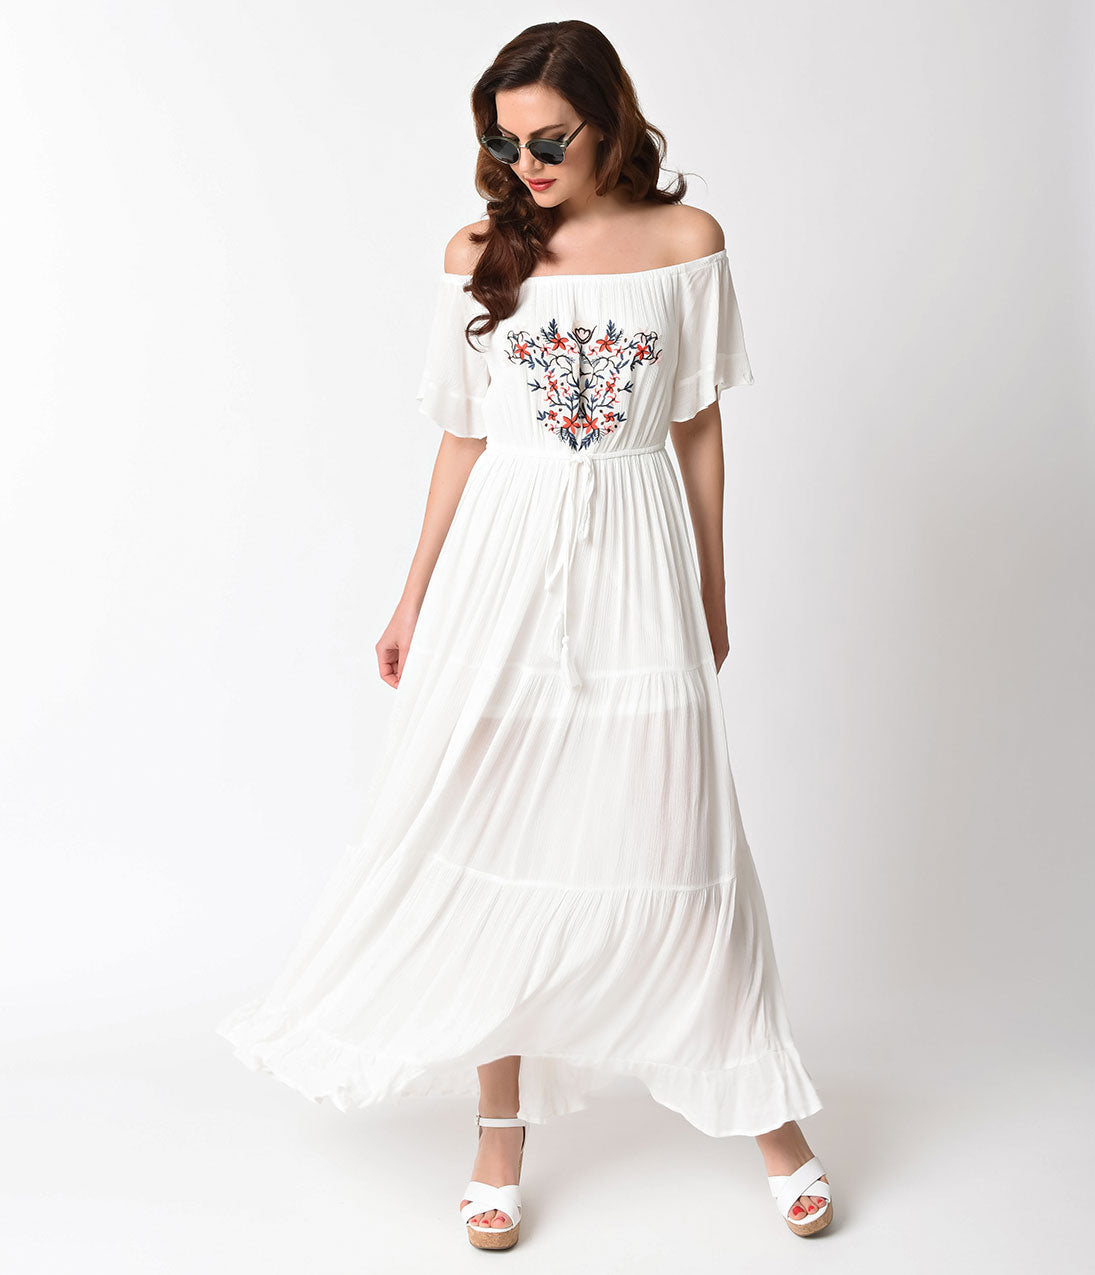 1960s Dresses: New 60s Style Dresses – Jackie O to Mod 1970s Style White  Multi Color Embroidered Off Shoulder Maxi Dress $47.00 AT vintagedancer.com